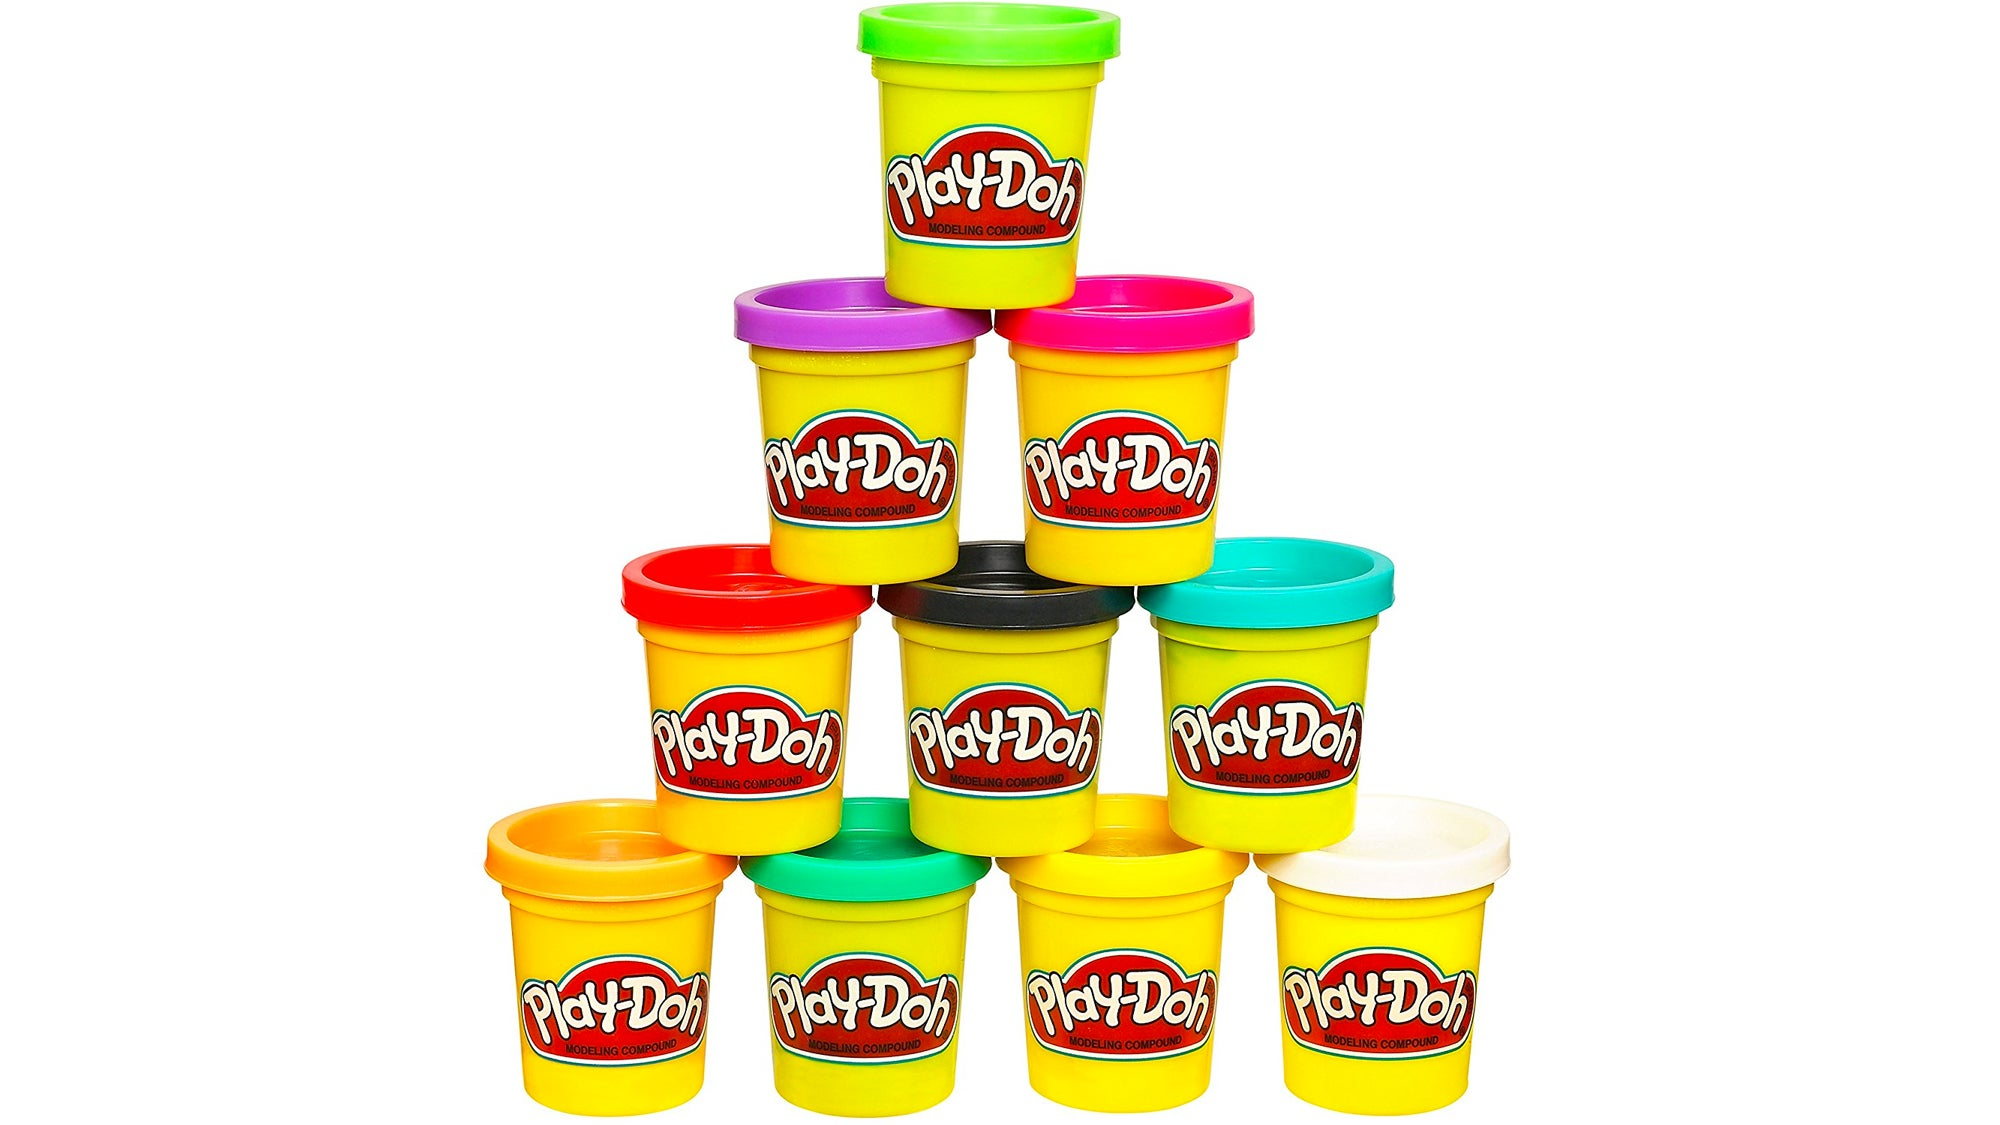 Hasbro Has Officially Trademarked The Smell Of Your Childhood: Play-Doh